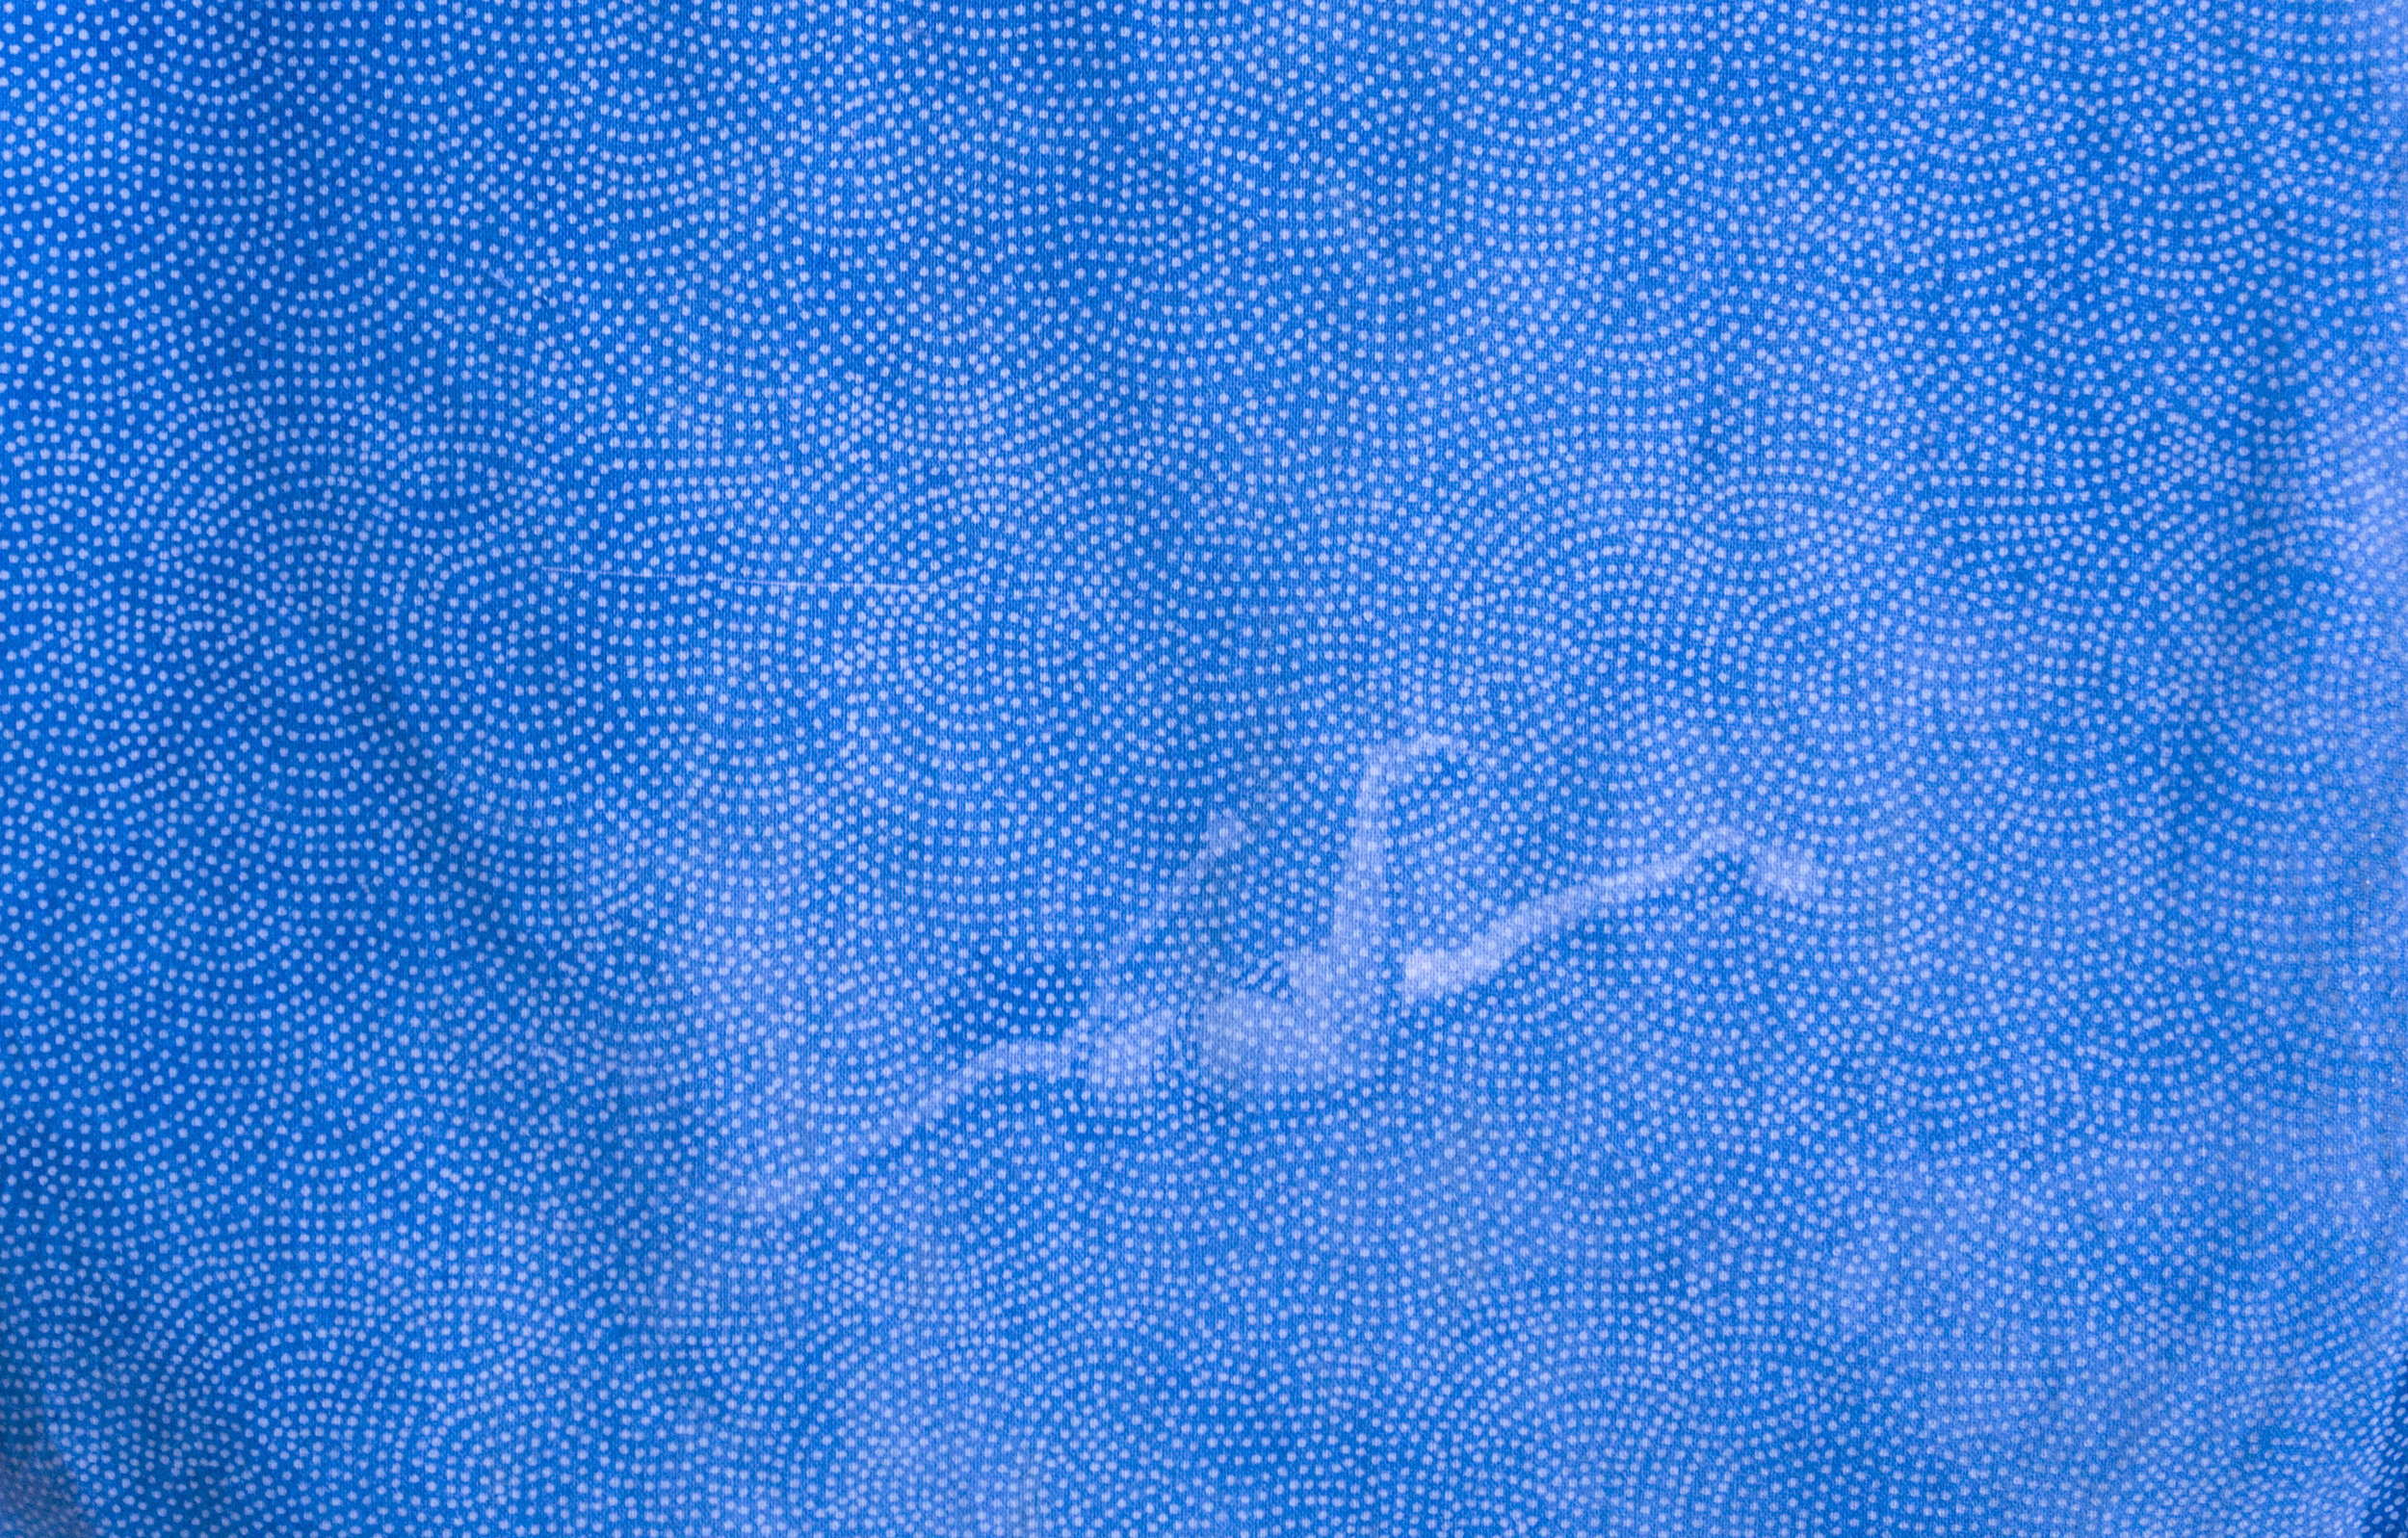 Untitled, 2017, Cyanotype on fabric, 22X30 cm.jpg